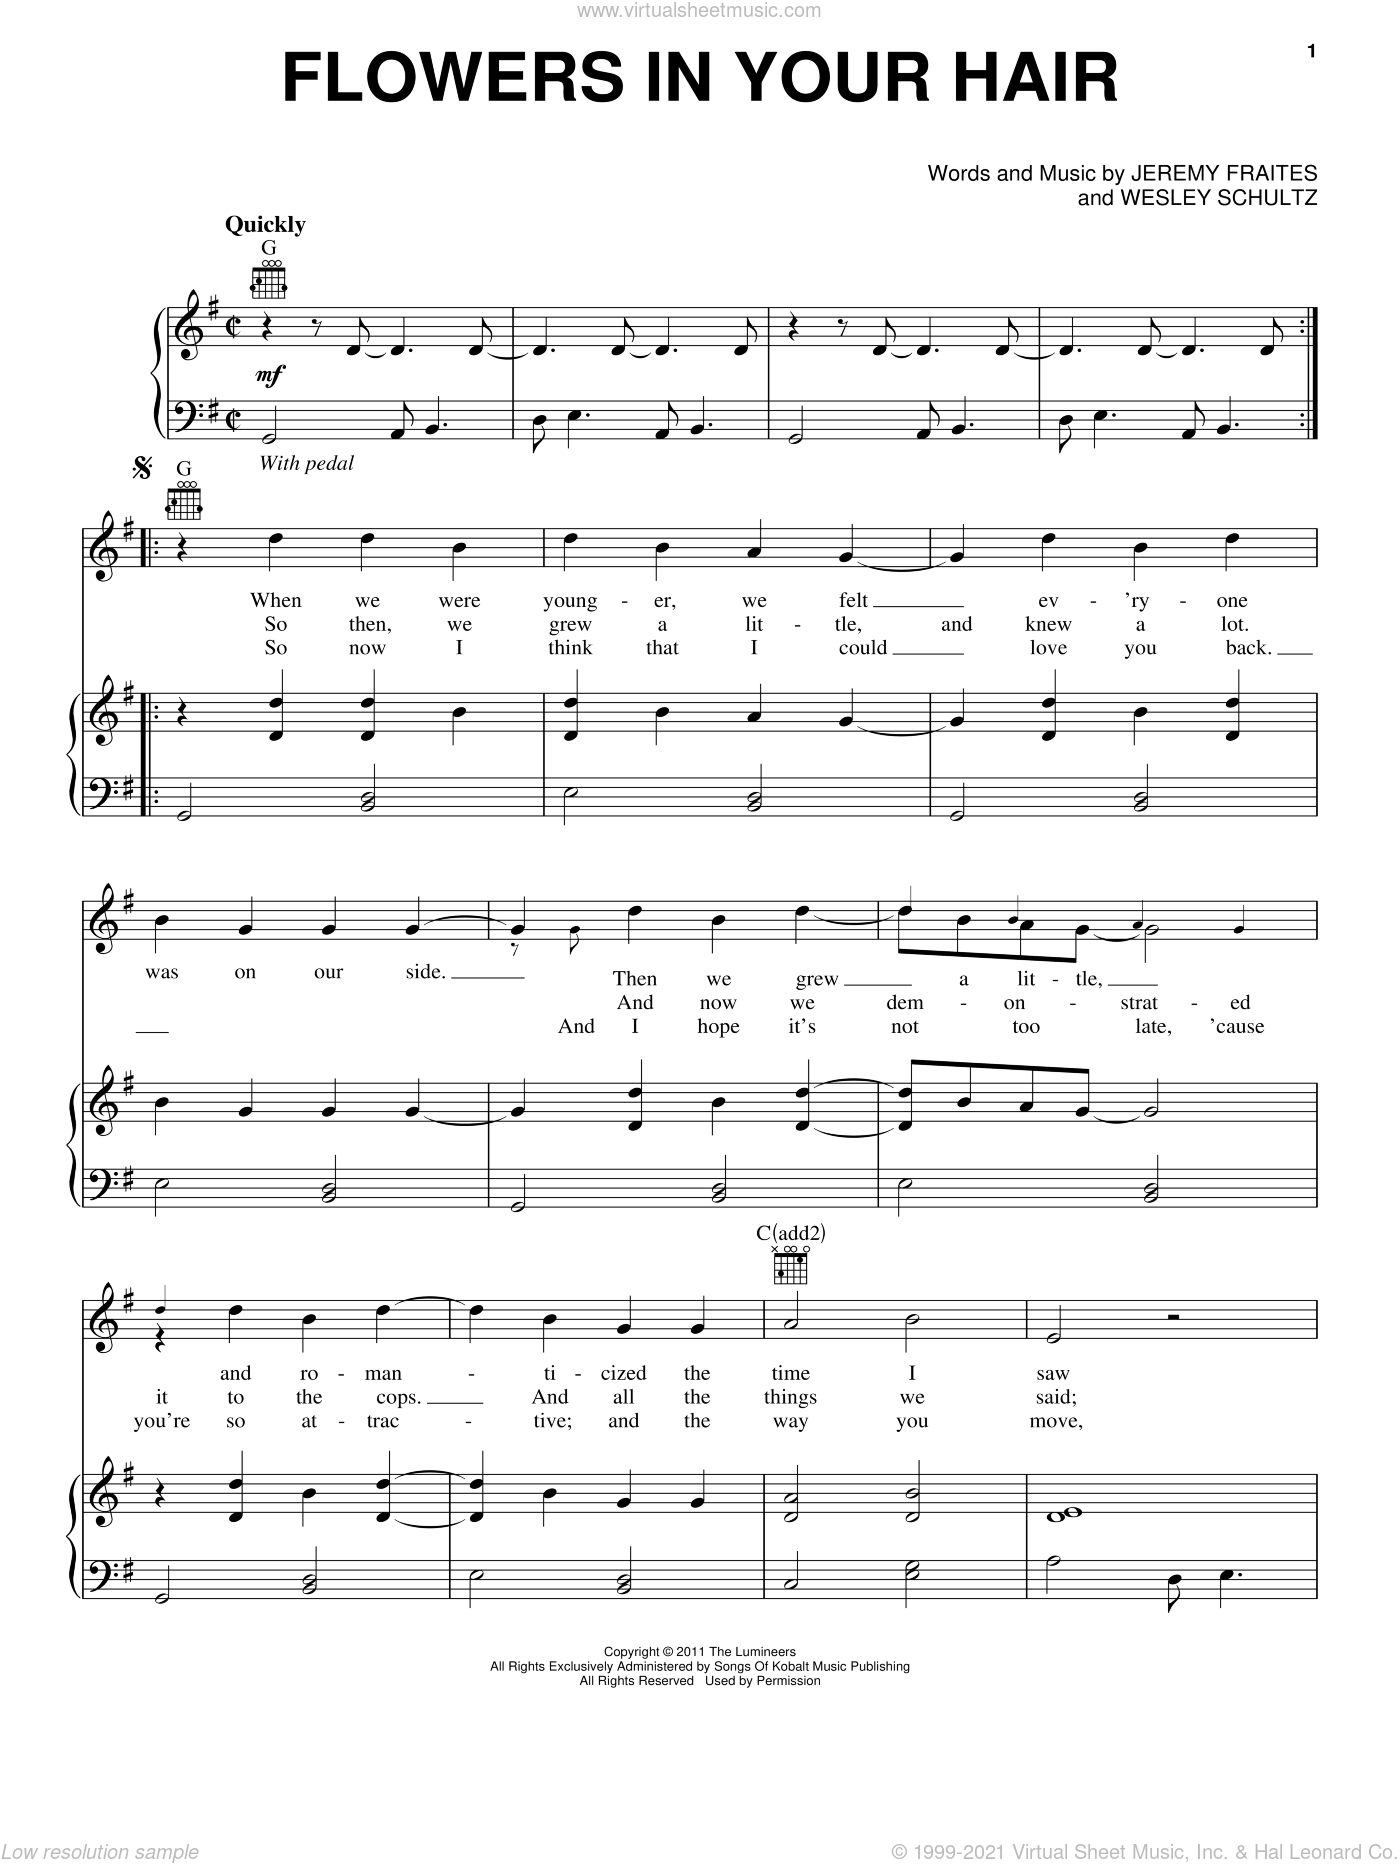 Flowers In Your Hair sheet music for voice, piano or guitar by The Lumineers, Jeremy Fraites and Wesley Schultz, intermediate skill level